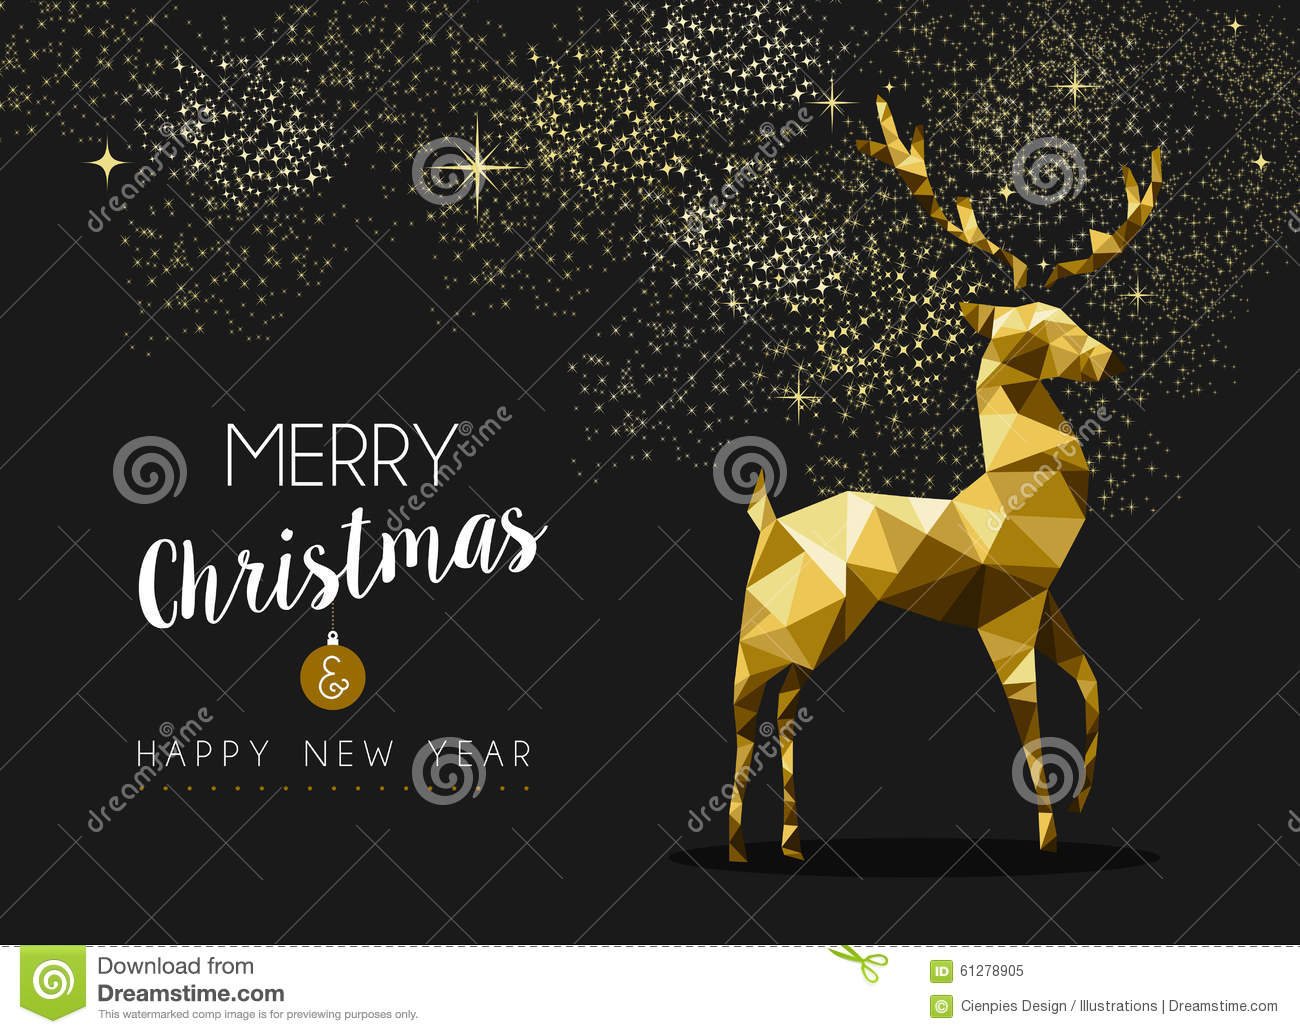 merry christmas happy new year gold deer origami illustration 61278905 megapixl